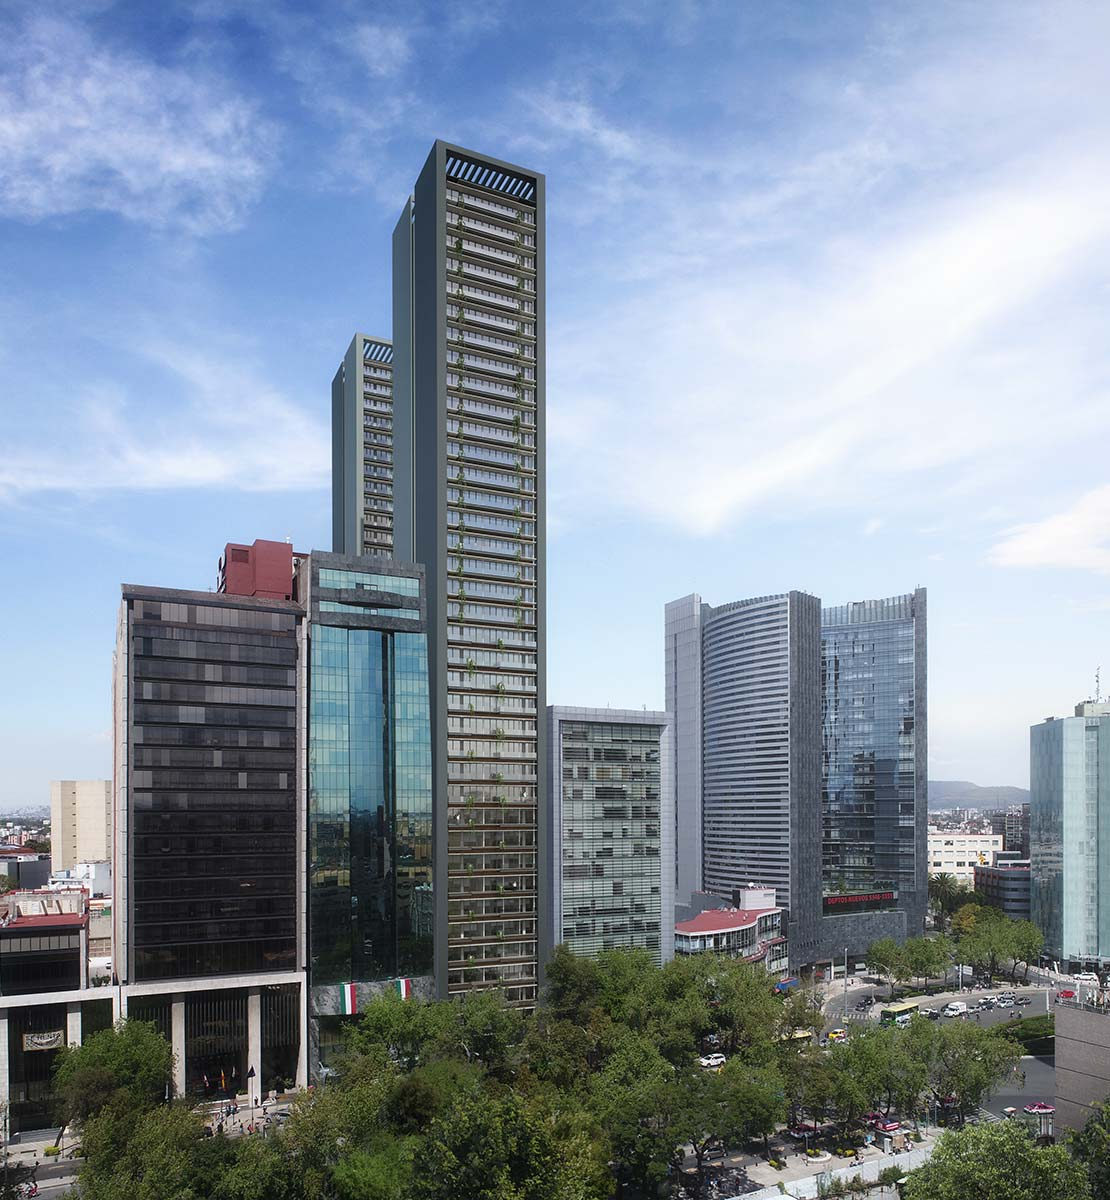 Reforma 95 Residential Towers, 2018